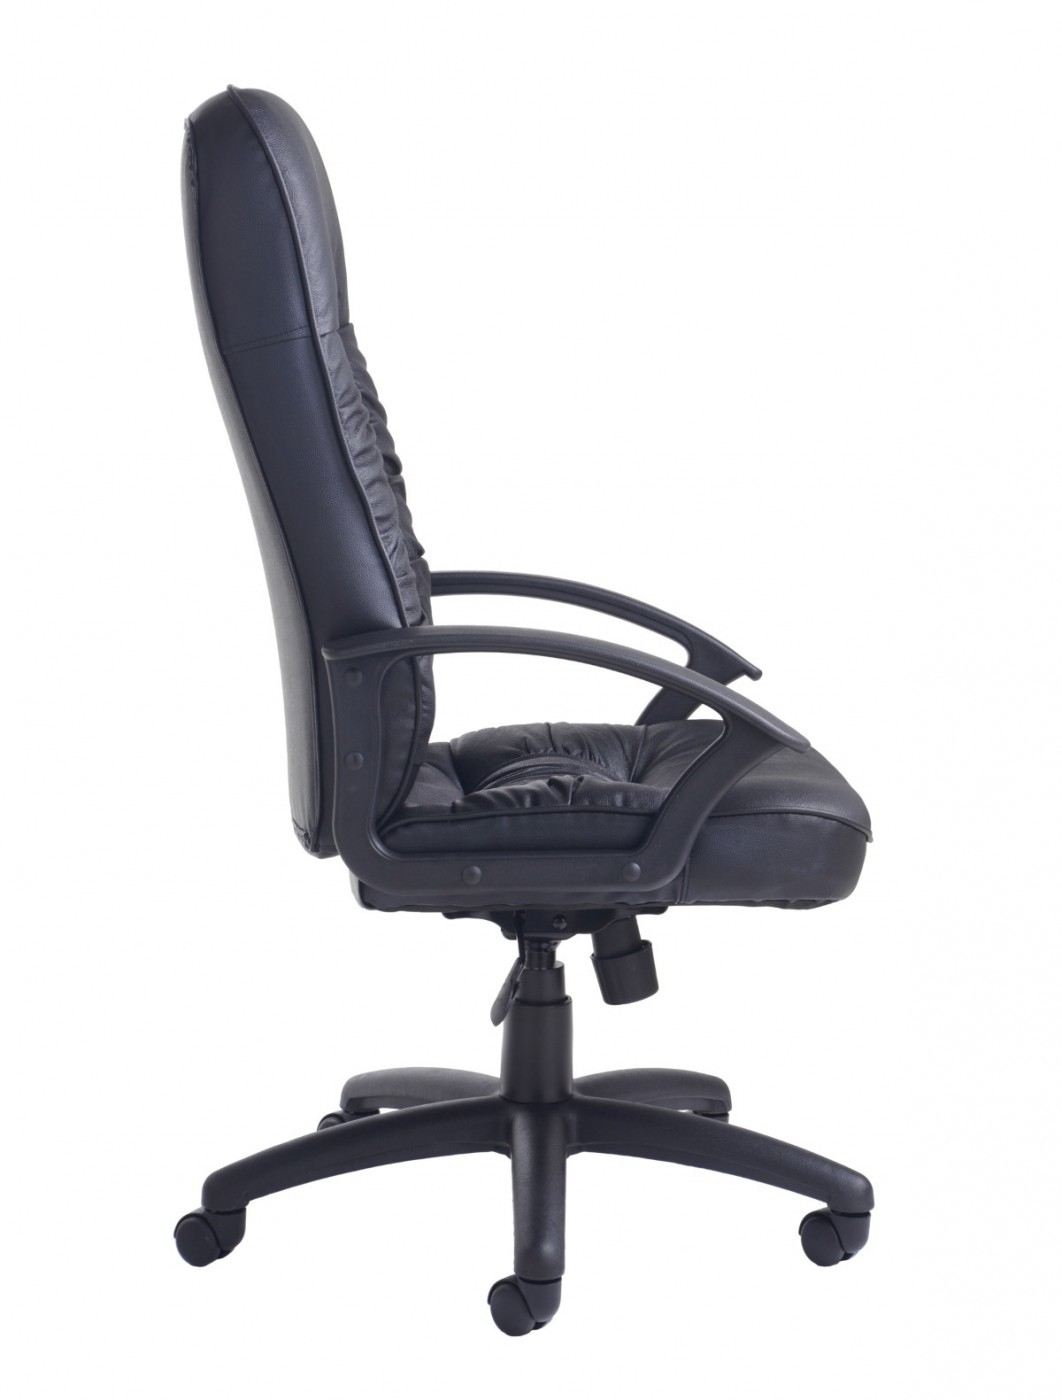 Office Chairs - King Leather Faced Managers Chair KNG300T1 - enlarged view  sc 1 st  121 Office Furniture & Office Chairs - King Leather Faced Managers Chair KNG300T1   121 ...